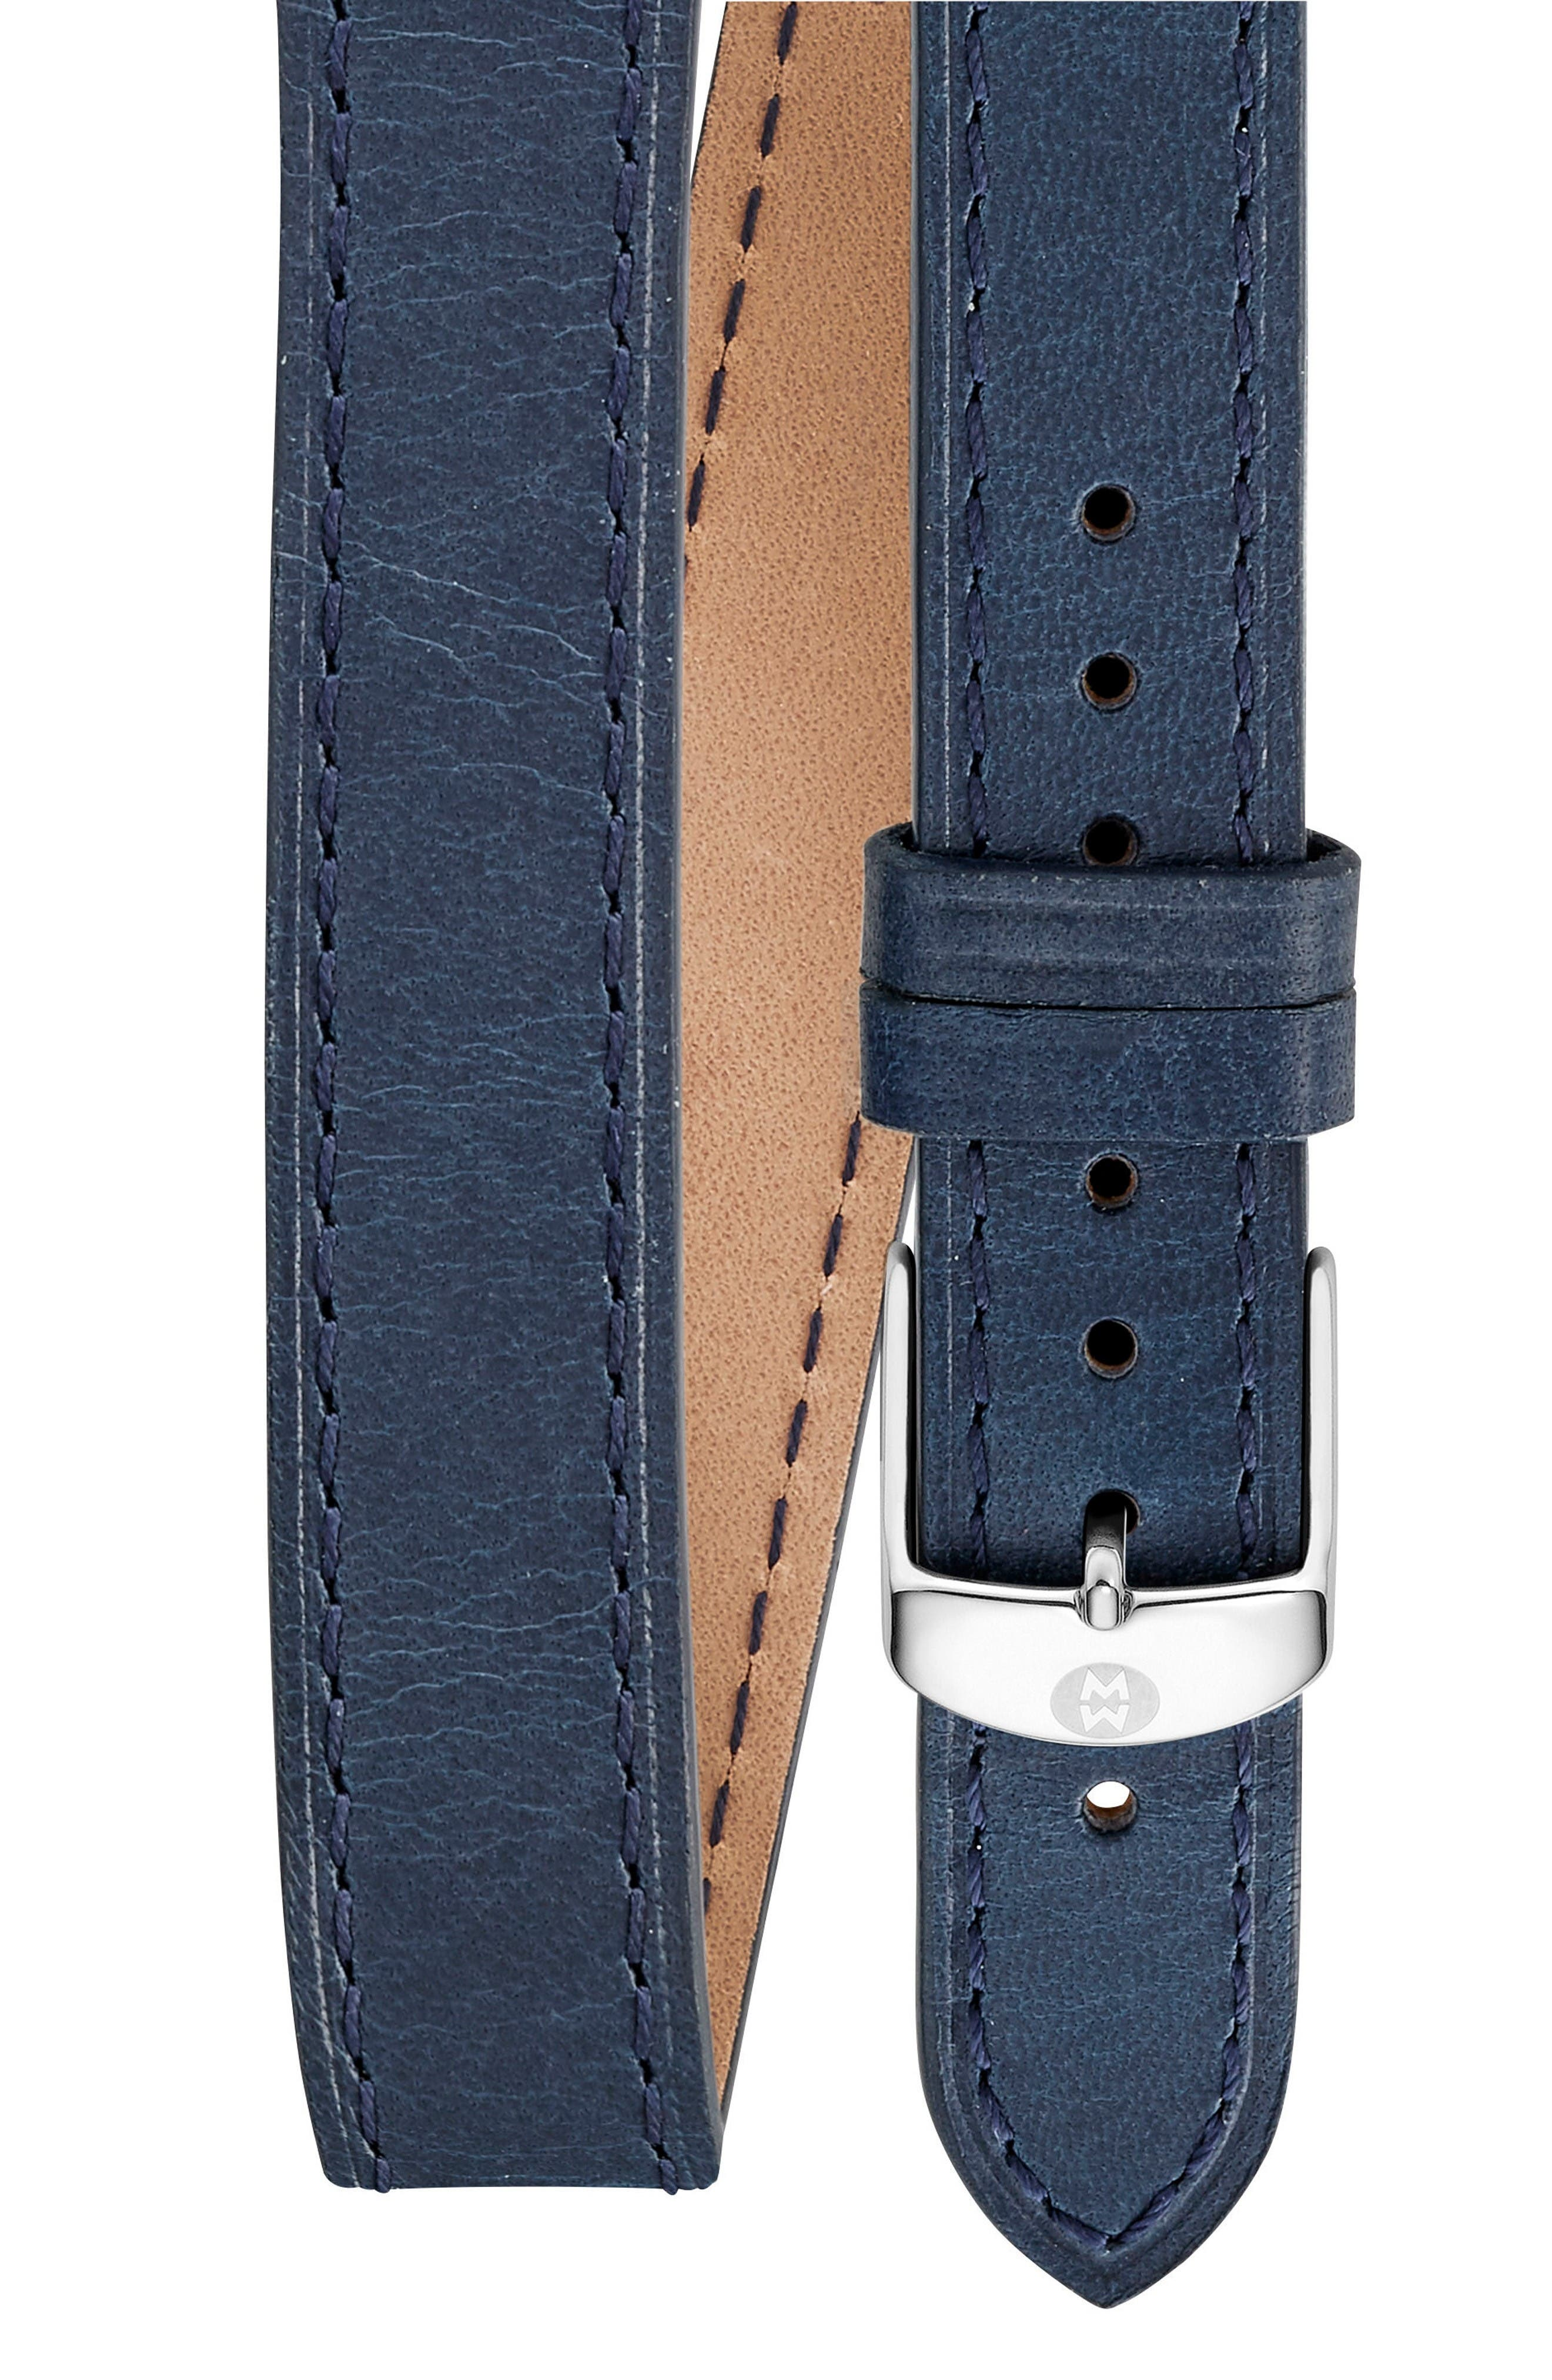 18mm Leather Watch Strap,                         Main,                         color, Navy